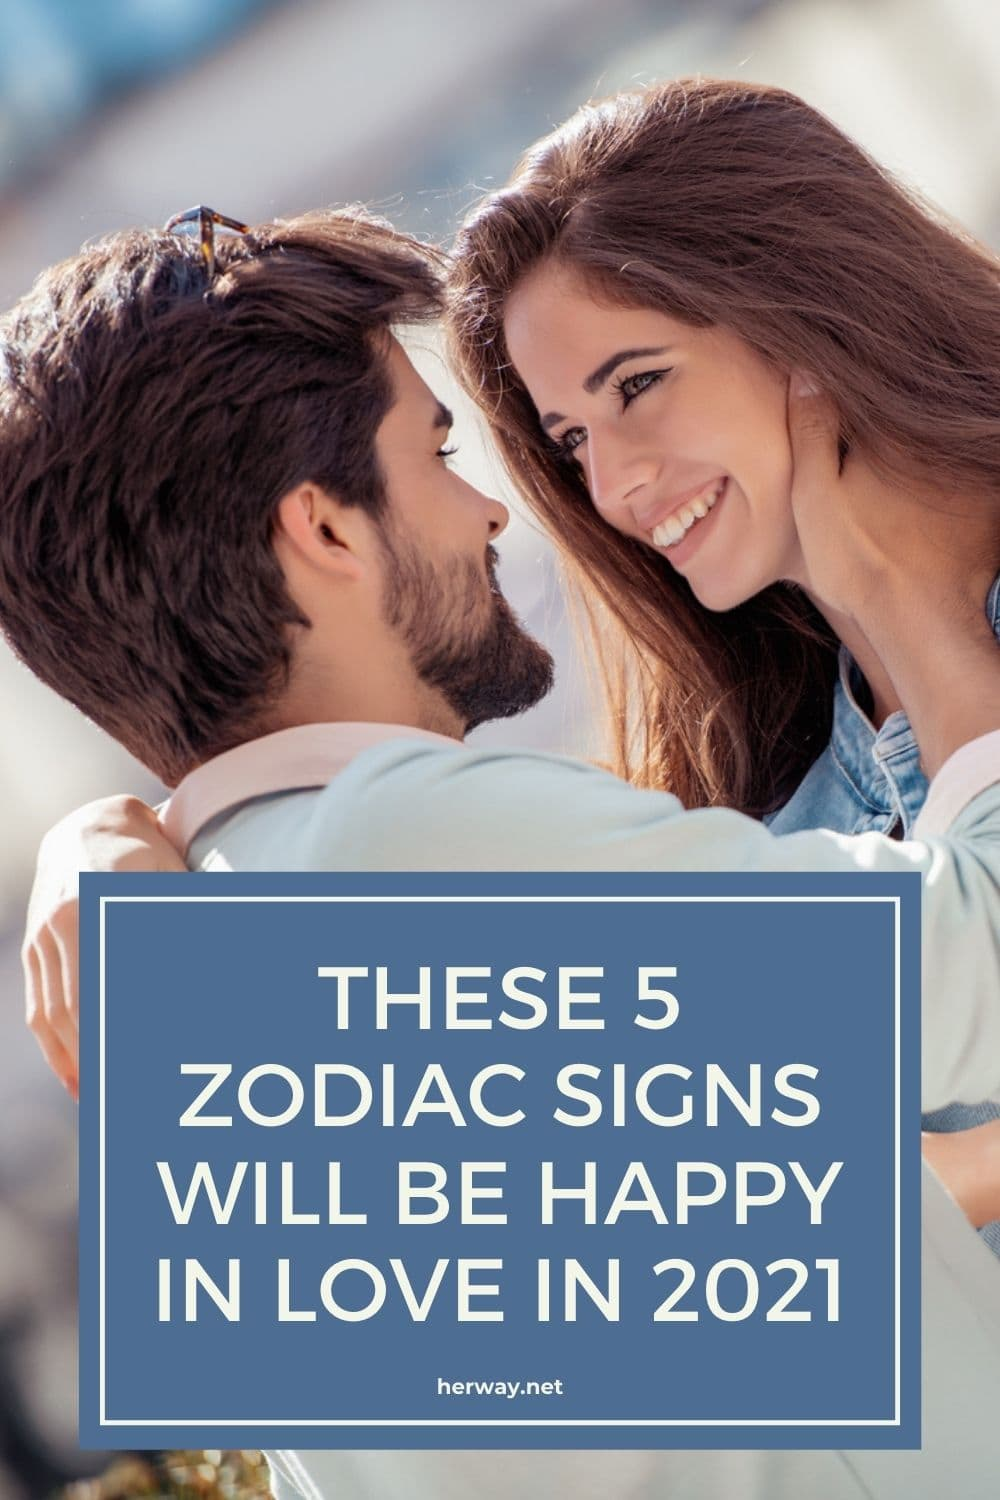 These 5 Zodiac Signs Will Be Happy In Love In 2021